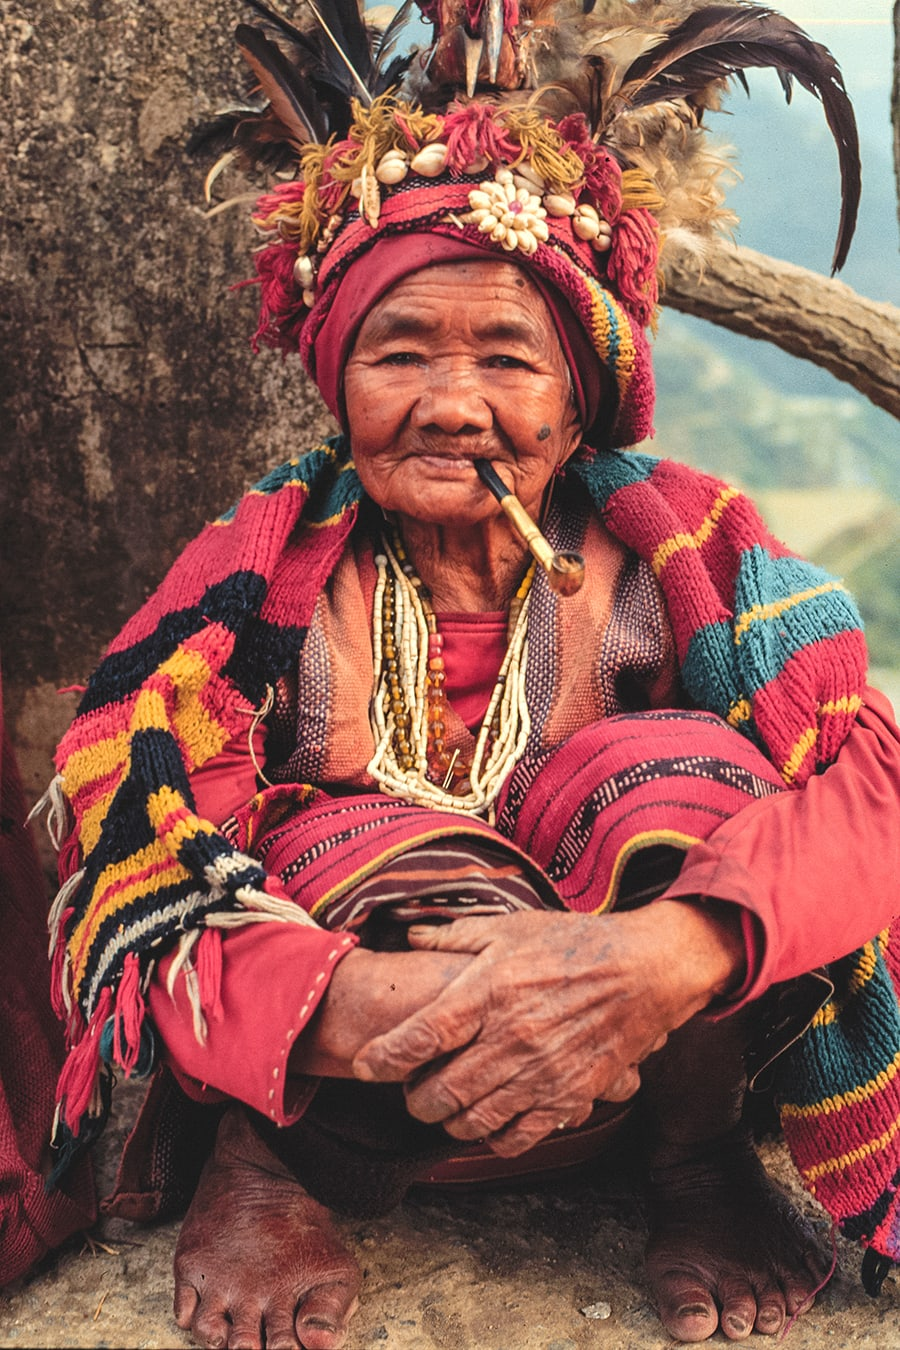 A 90+ year old woman from the Ifugao tribe in Banaue, Philippines.